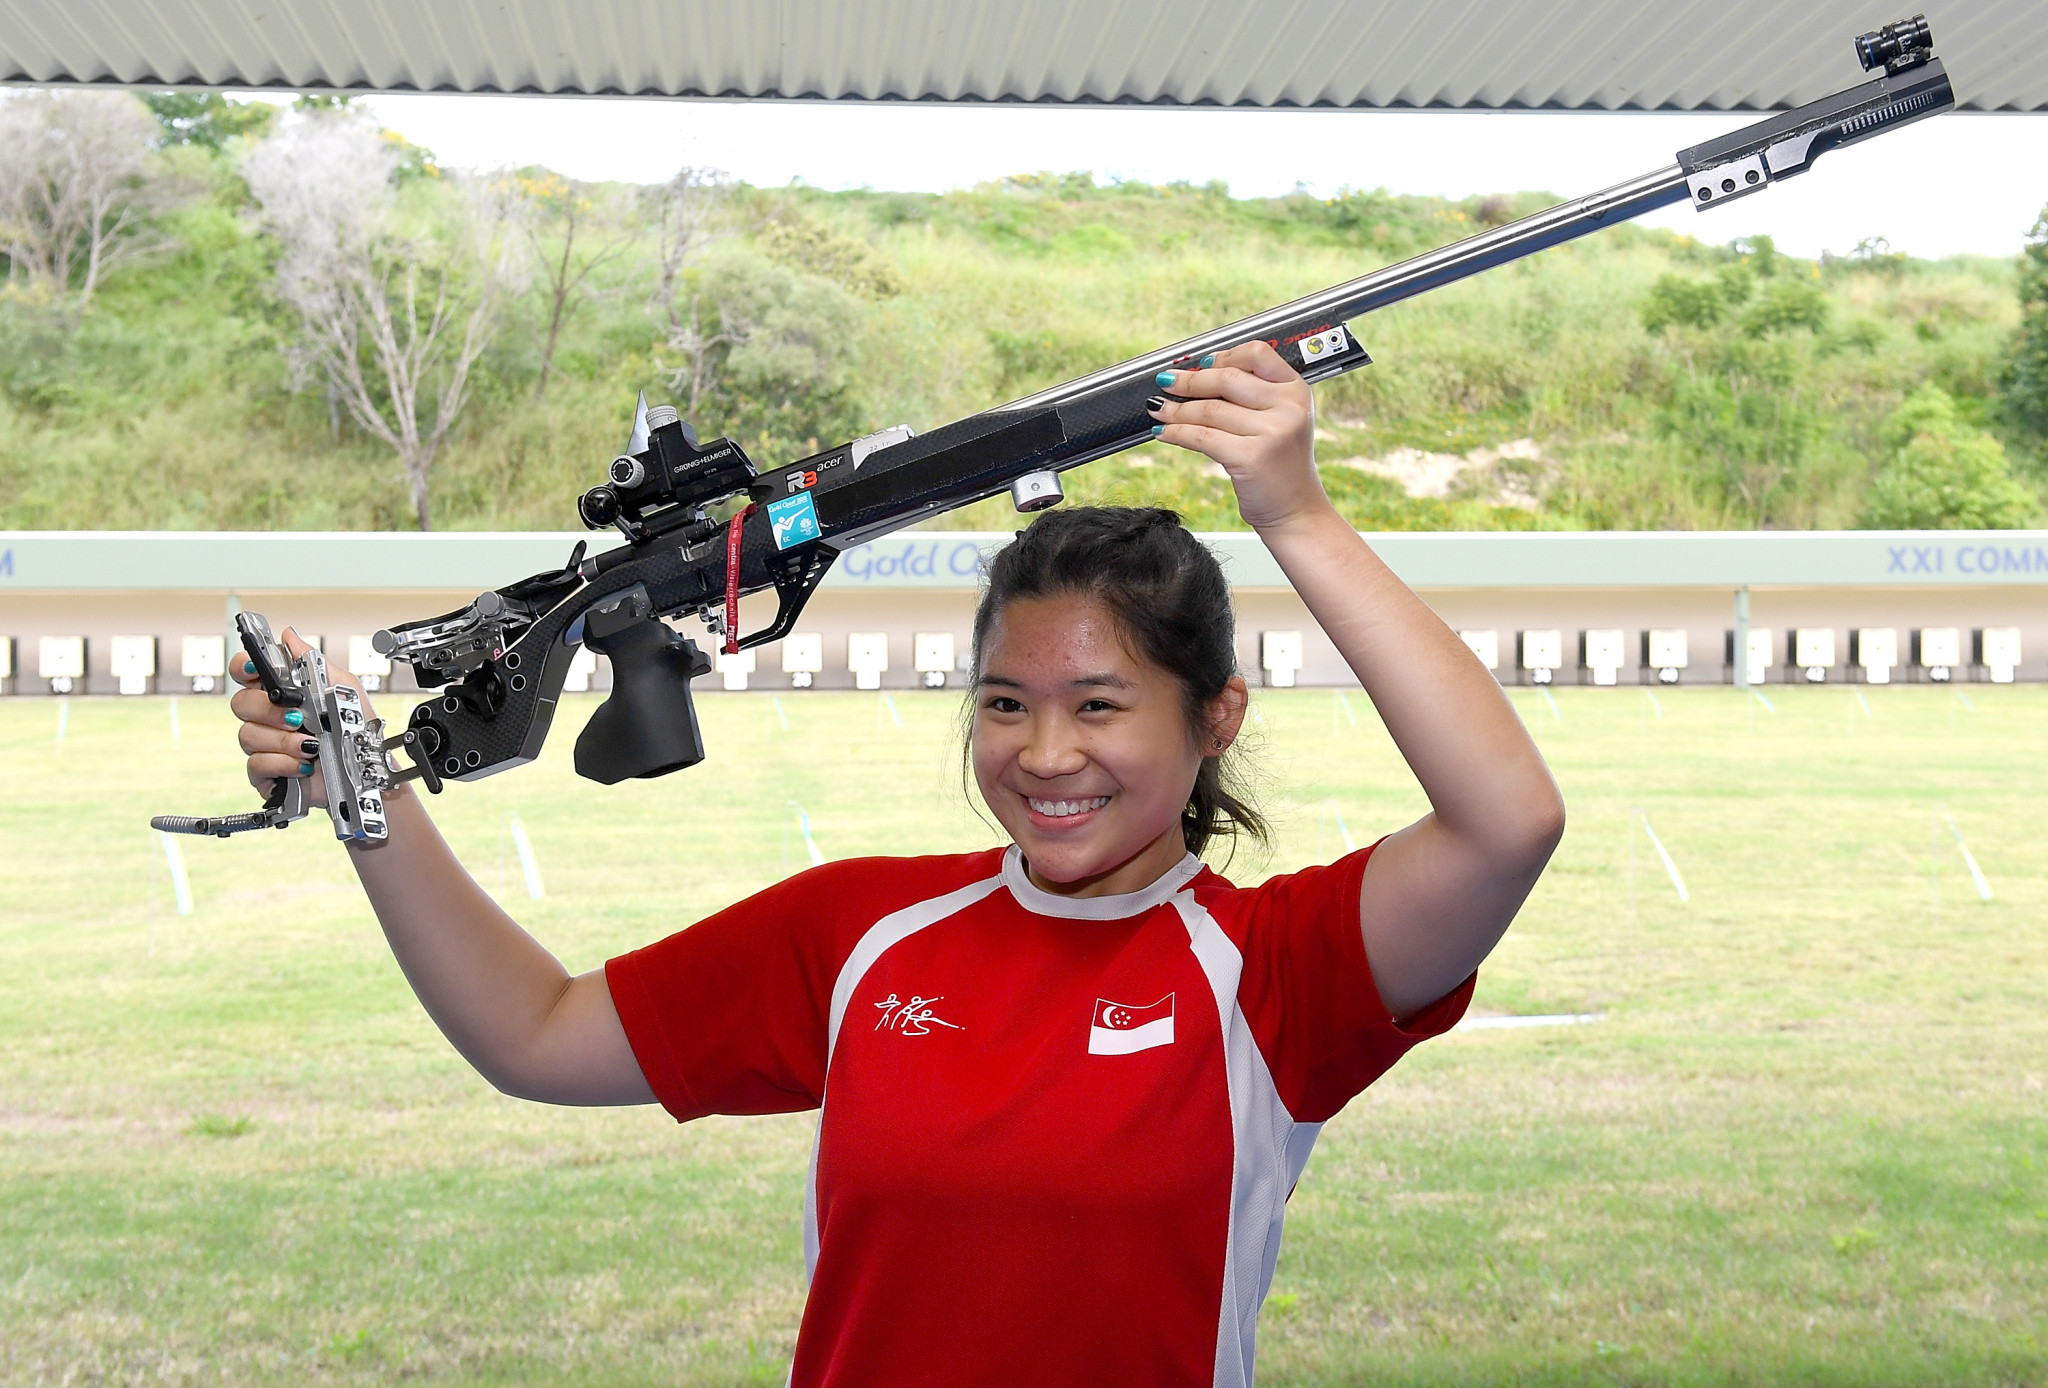 Singaporean breaks Commonwealth Games record to win women's 50m rifle prone event at Gold Coast 2018